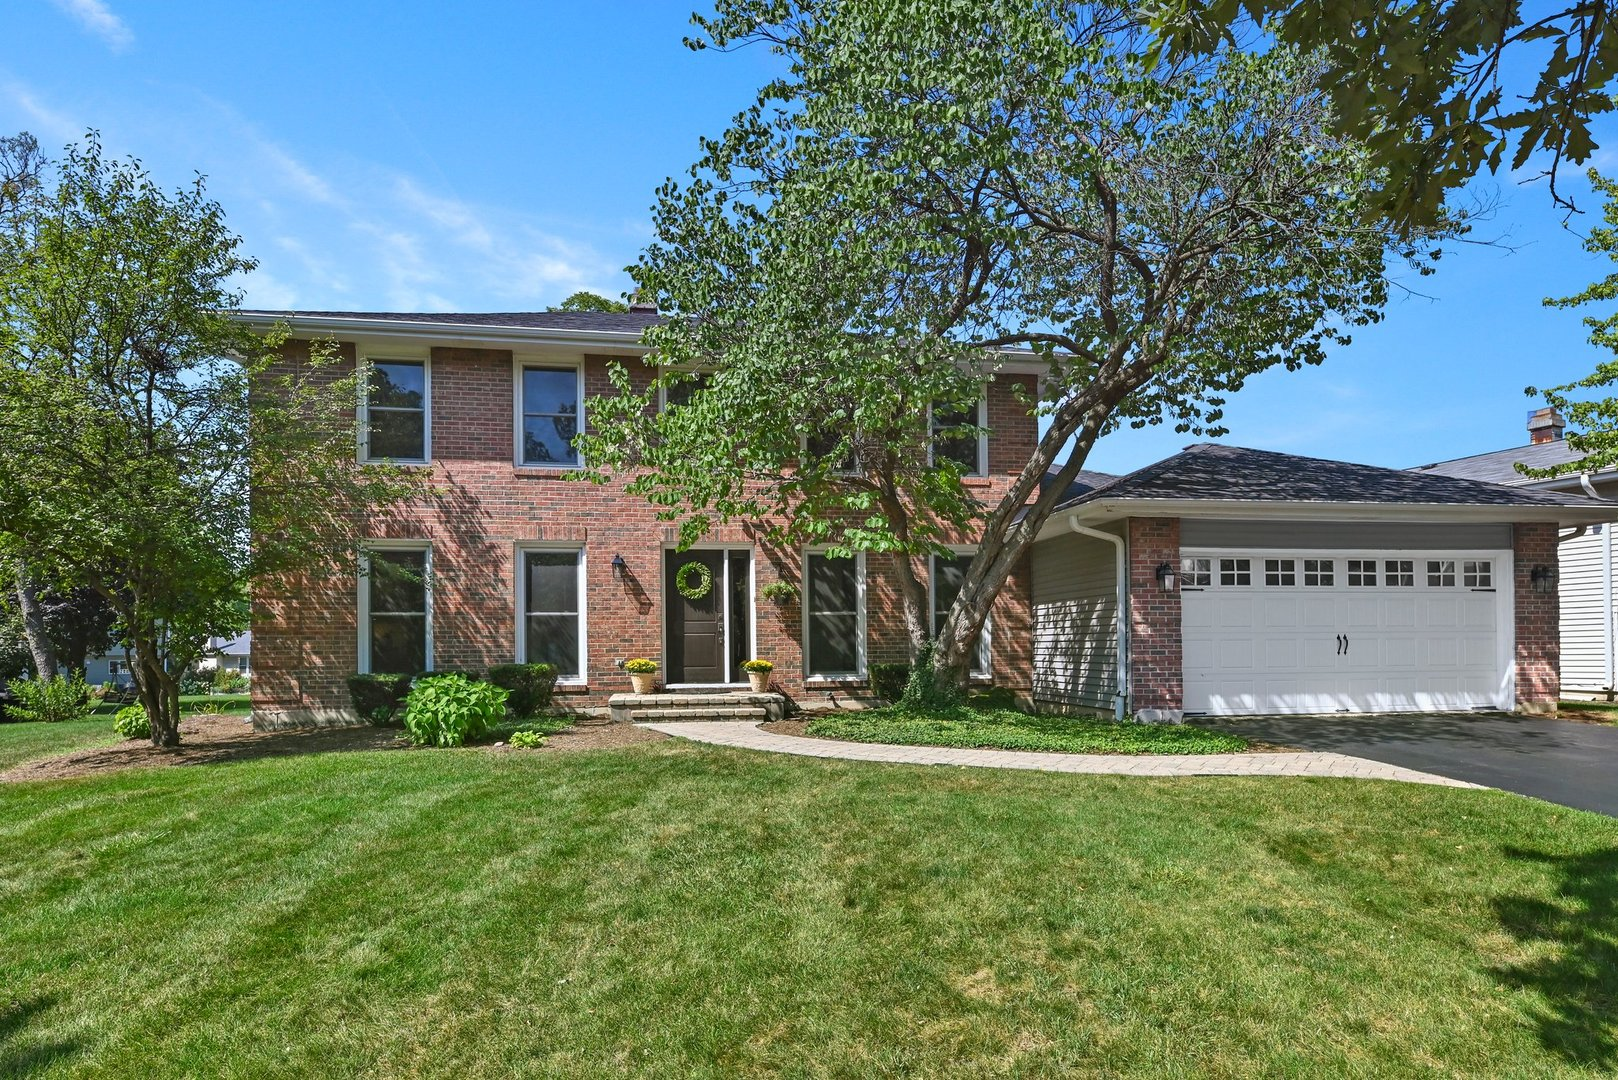 Updated brick Georgian on quiet tree lined street.  Newer eat-in kitchen with granite counters, hardwood floors, large pantry and SS appliances. Butlers Pantry (Gallery) adjacent to kit. and family room. First floor office plus an additional office area in the basement, great for working from home. Spacious living room has refinished hardwood floors and large windows that bathe the room in light. First floor family room with fireplace opens to 12x17 deck with pergola canopy. 2.1 baths, have all been remodeled. Freshly painted interior in '21. New carpet in 4 bedrooms '20. Roof new in '14. New garage door and exterior doors in '20. Finished basement with rec room, office and laundry room for extra living space.  Professionally landscaped yar